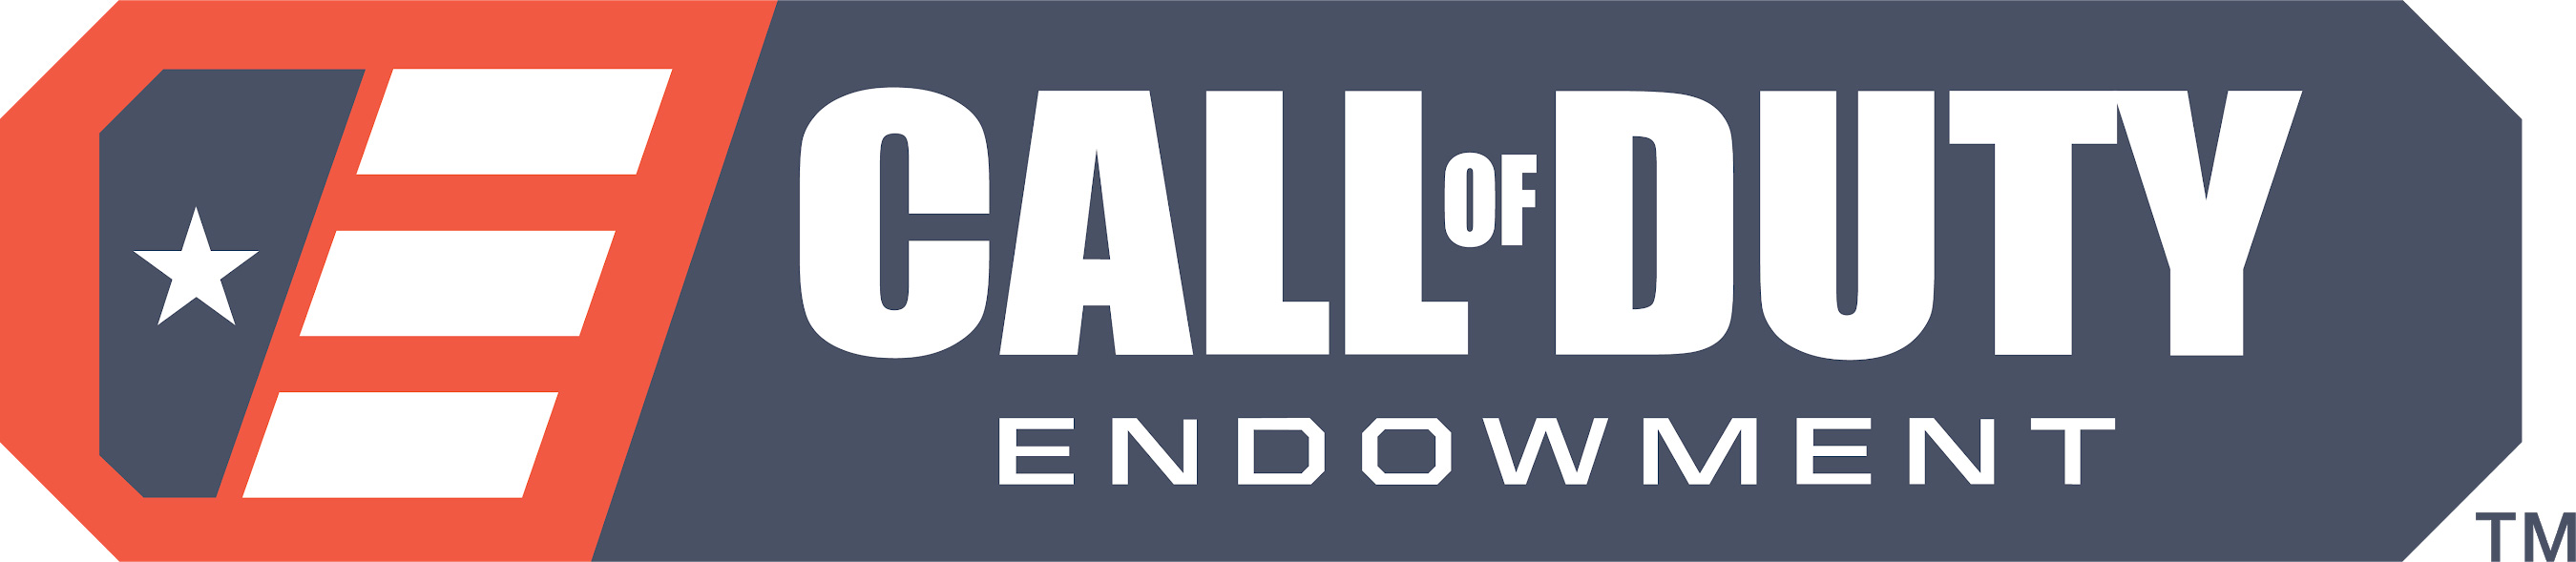 Call of Duty Endowment  - Let's Get Our Vets Back to Work